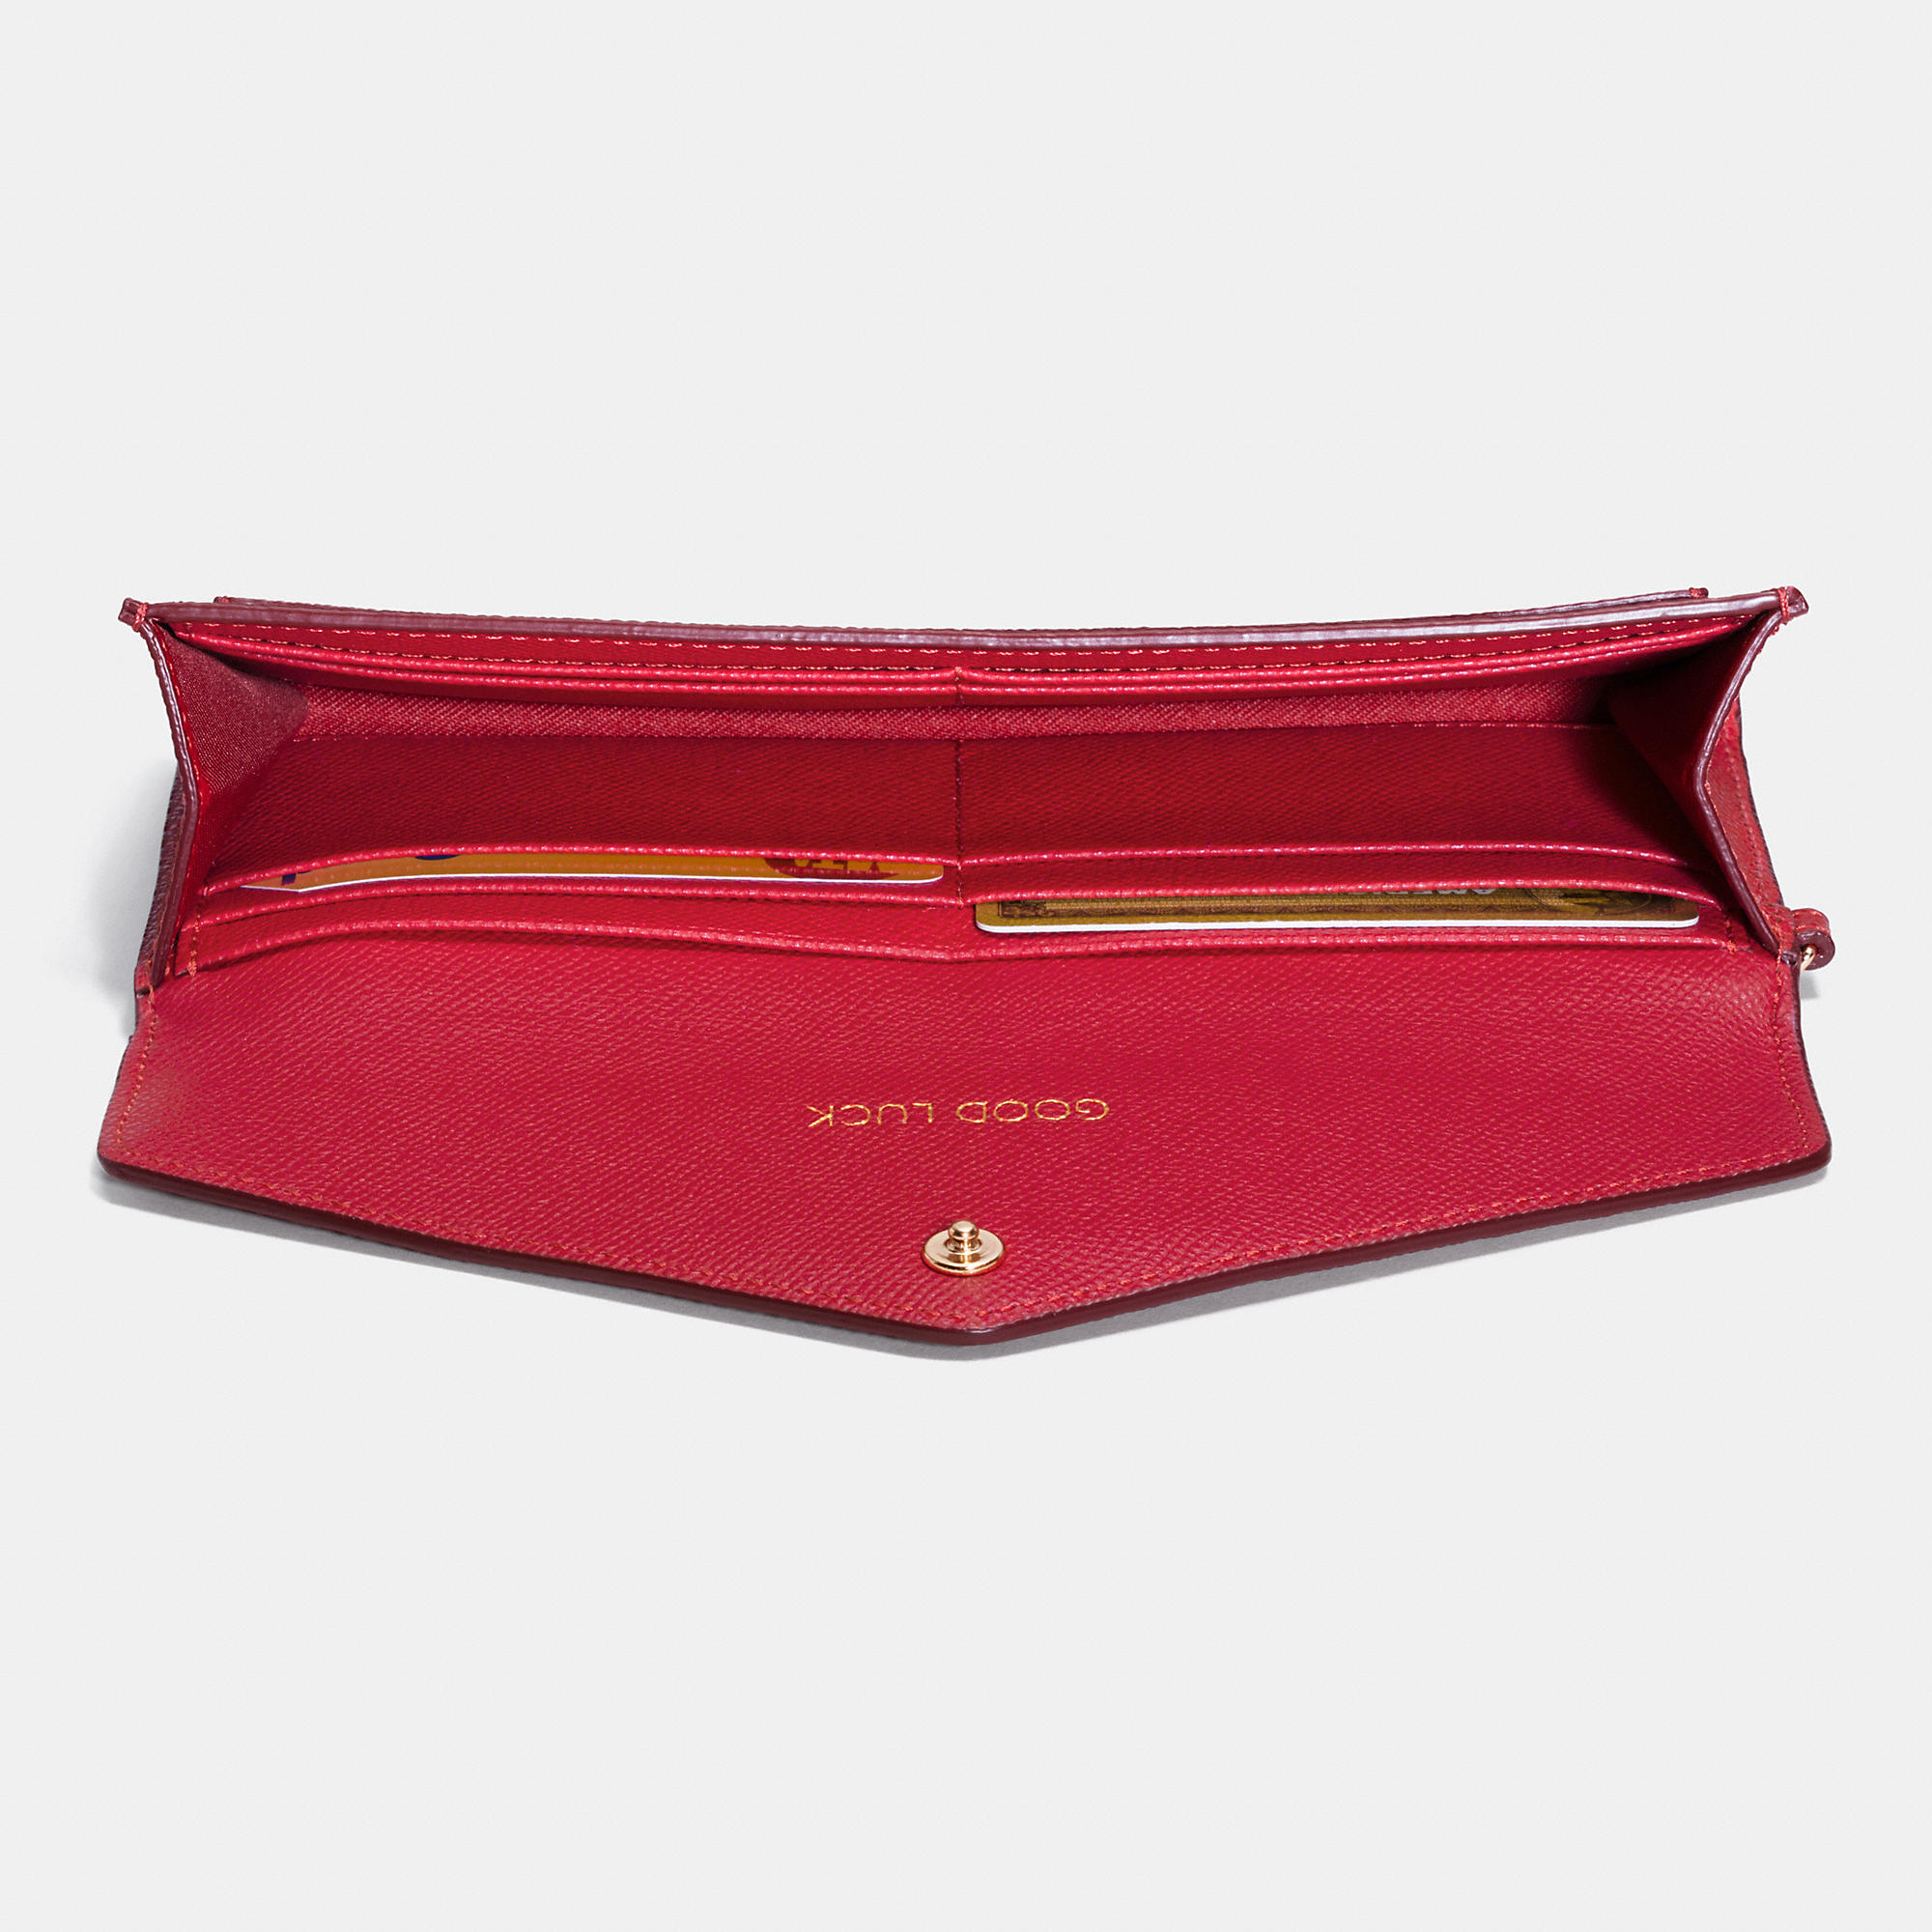 coach wallets sale outlet eu1u  red coach wallet